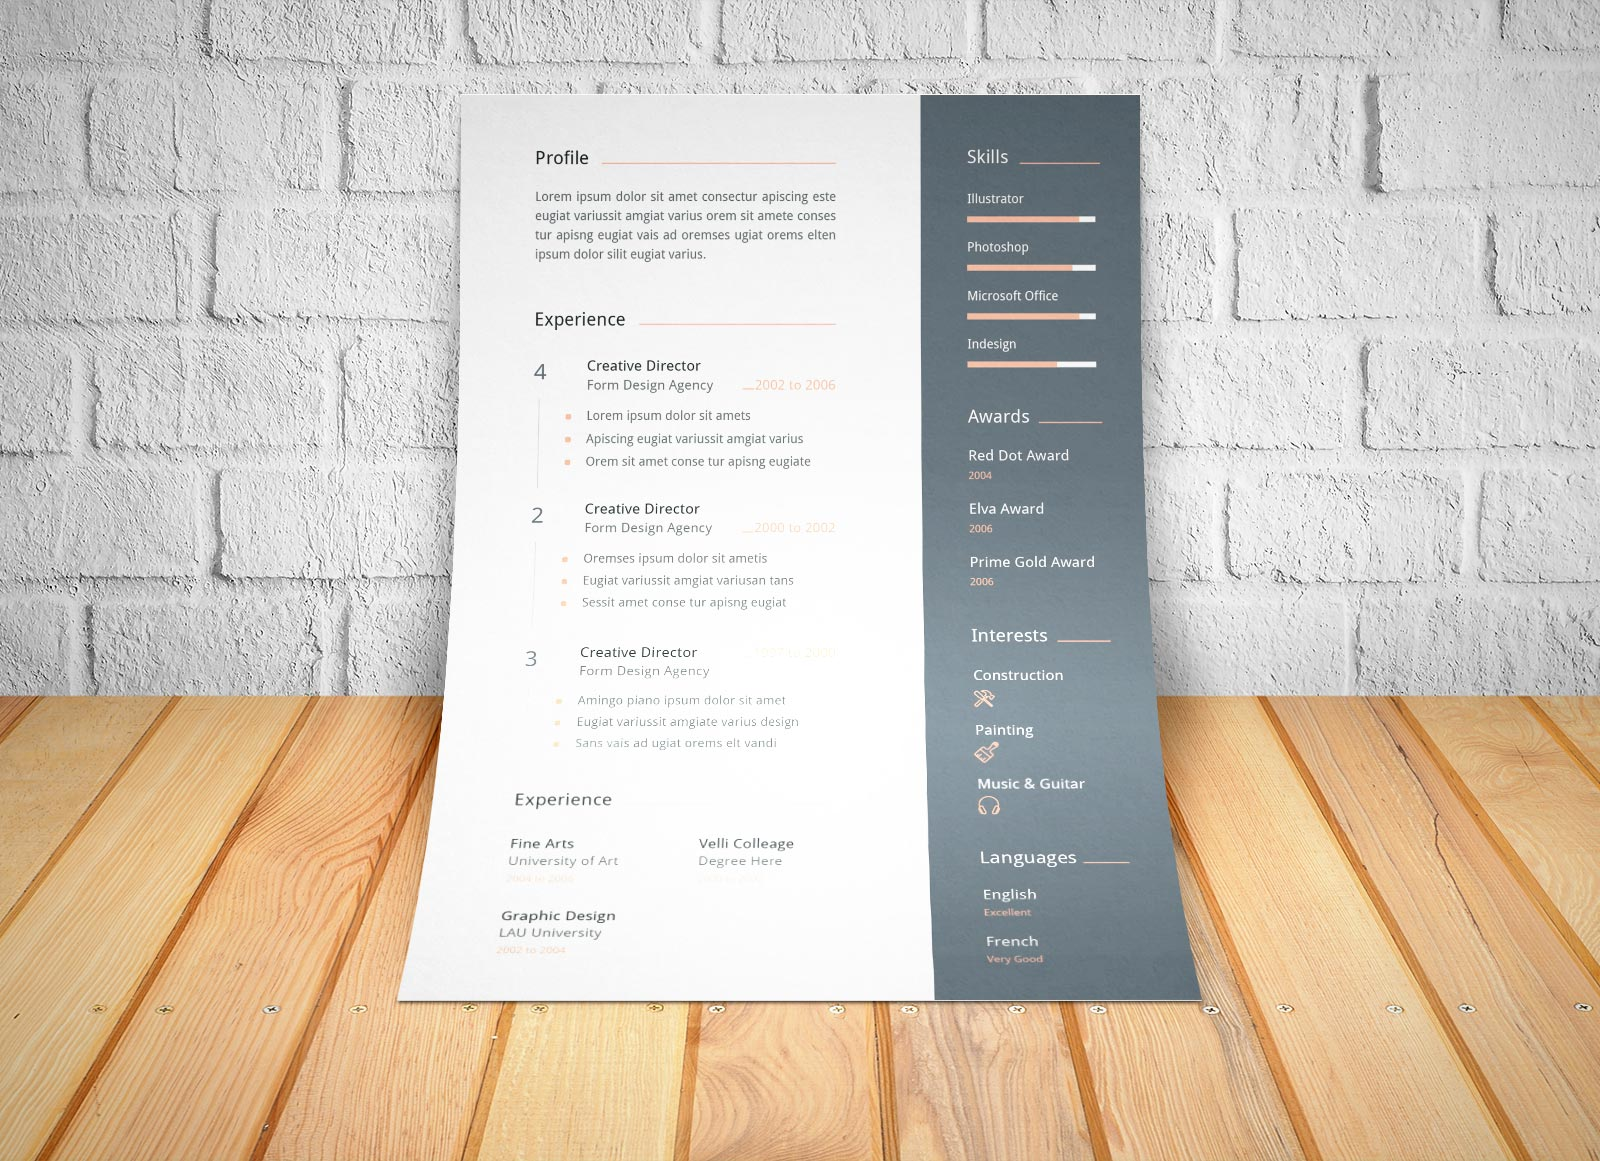 Free-Modern-Resume-Template--Cover-Letter-&-Portfolio-in-Ai-Format-002